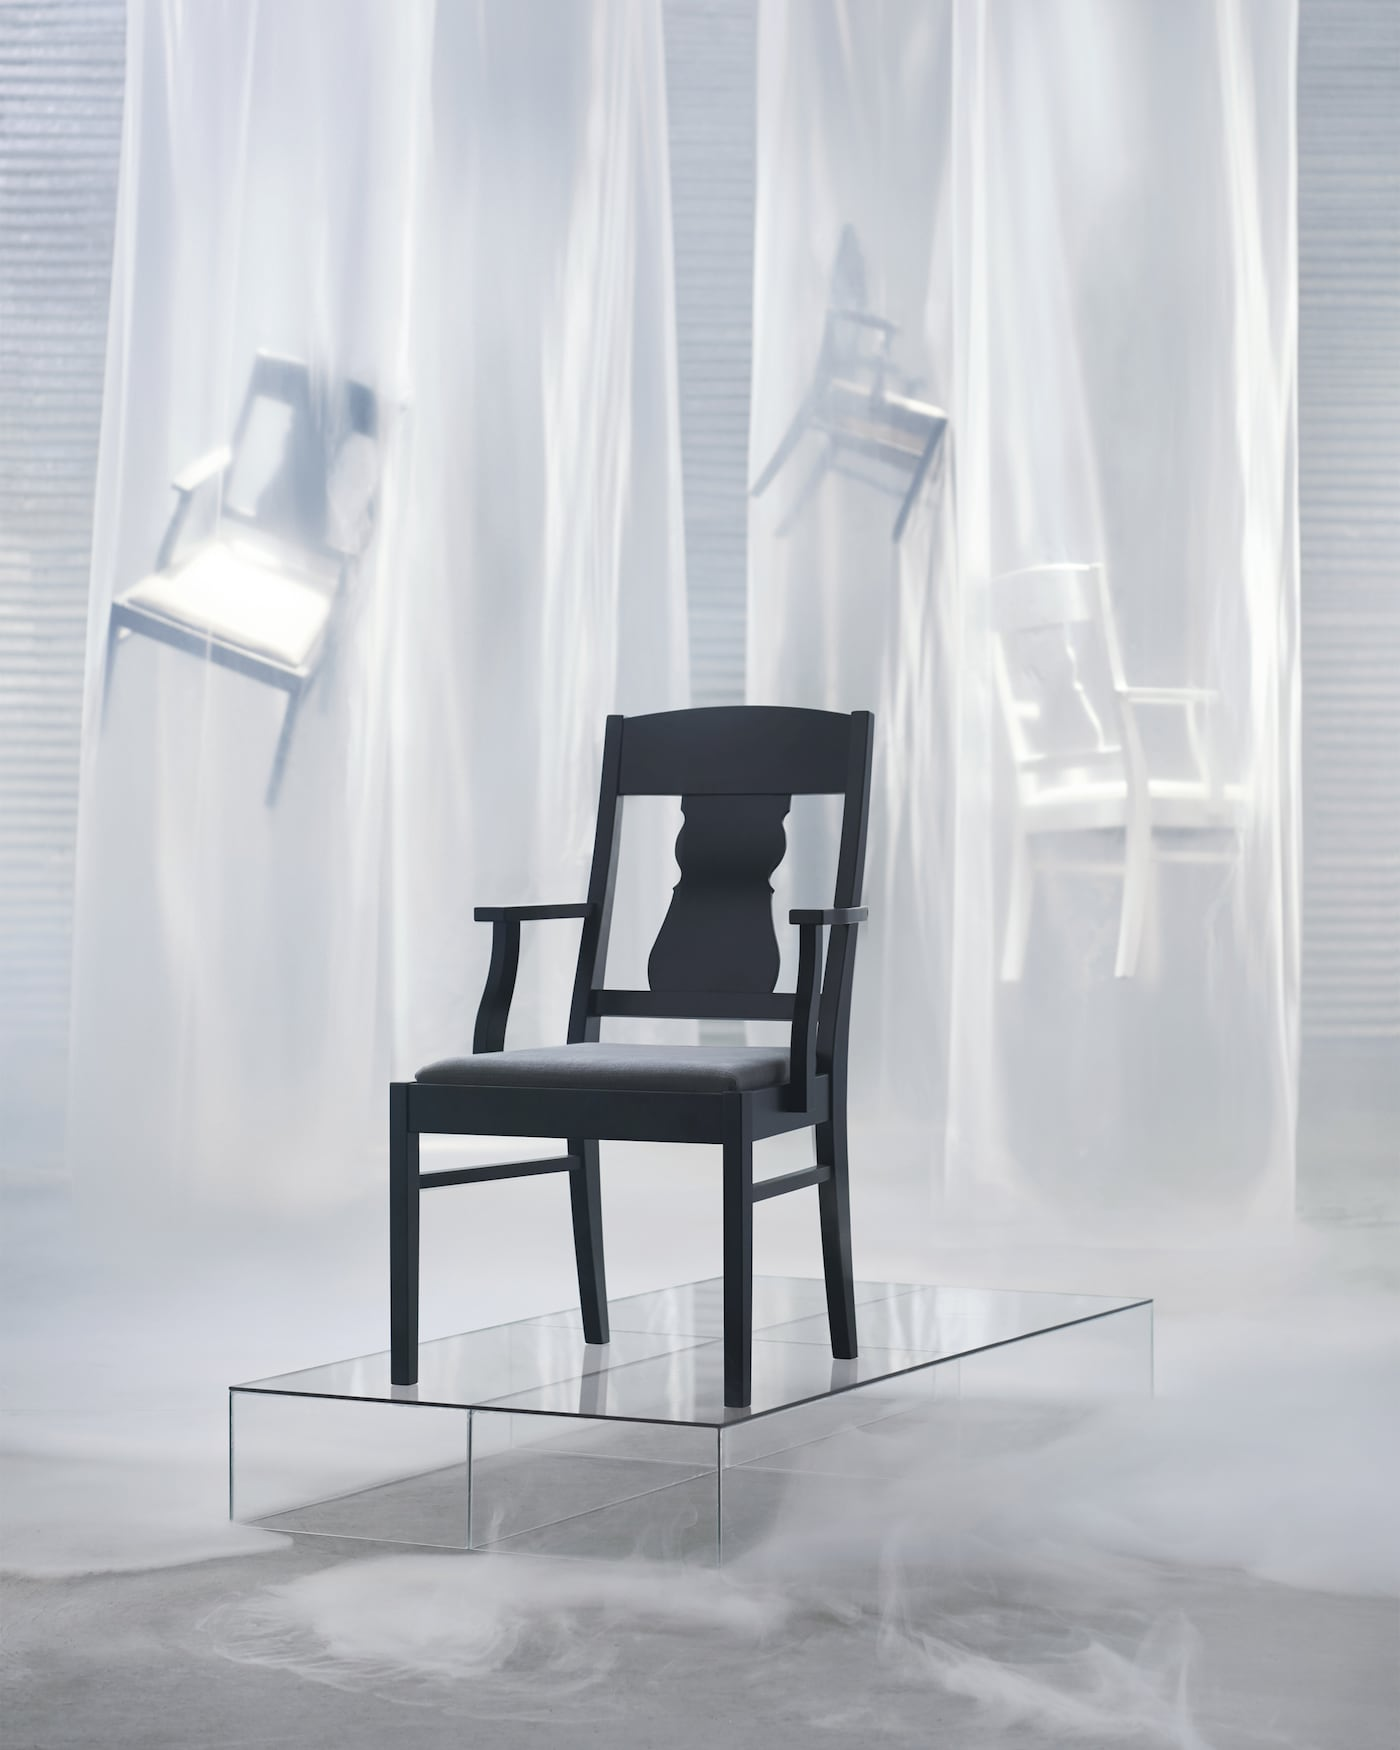 The IKEA INGATORP chair with armrests is available in a black version with a grey cover or a white frame with a beige cover. The chair combines traditional design with features like ornamental details in the back rest with modern upholstered comfort.